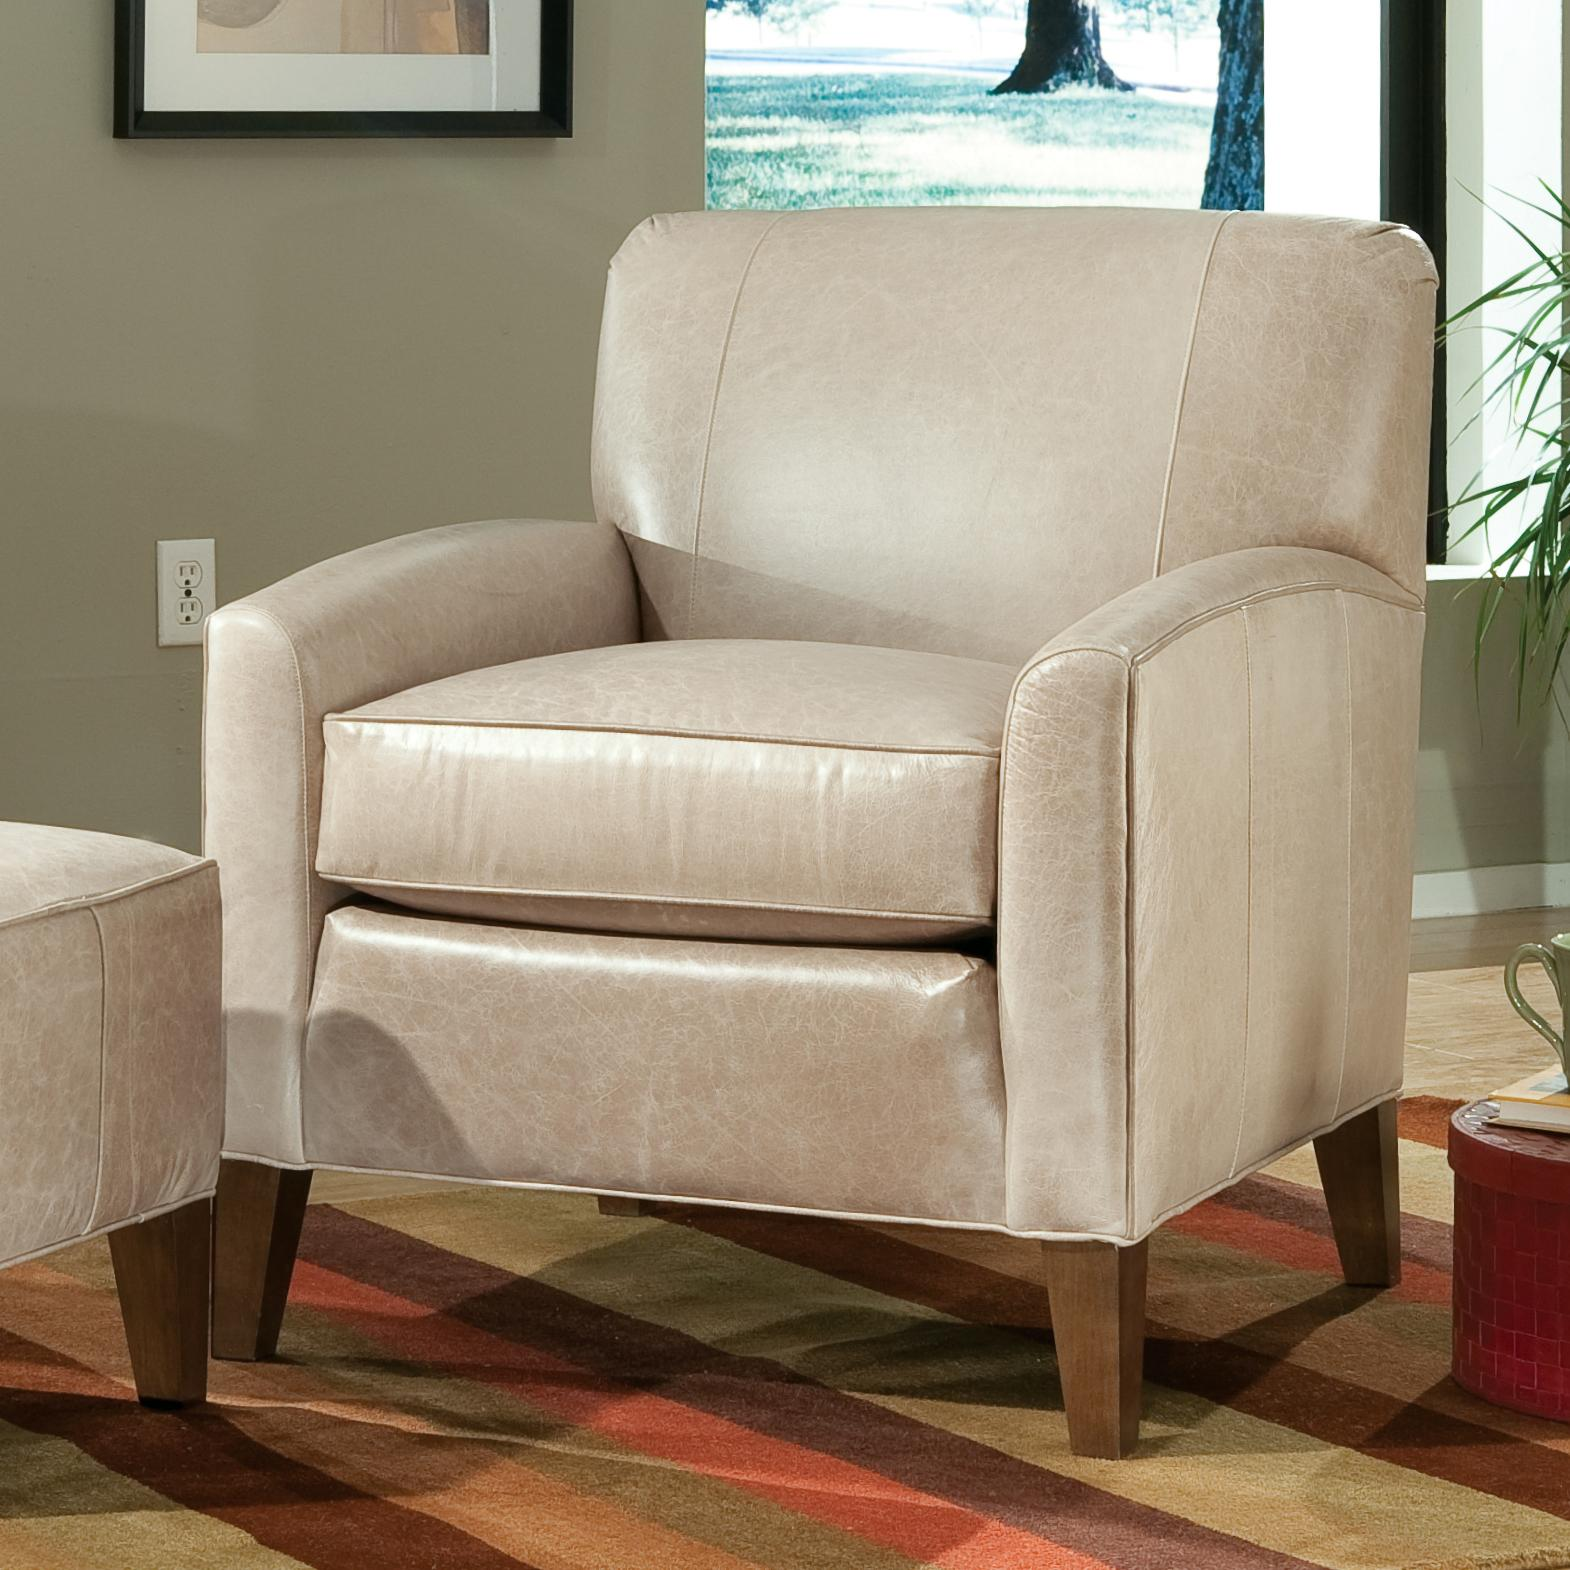 accent chairs with ottomans sams folding smith brothers and sb contemporary